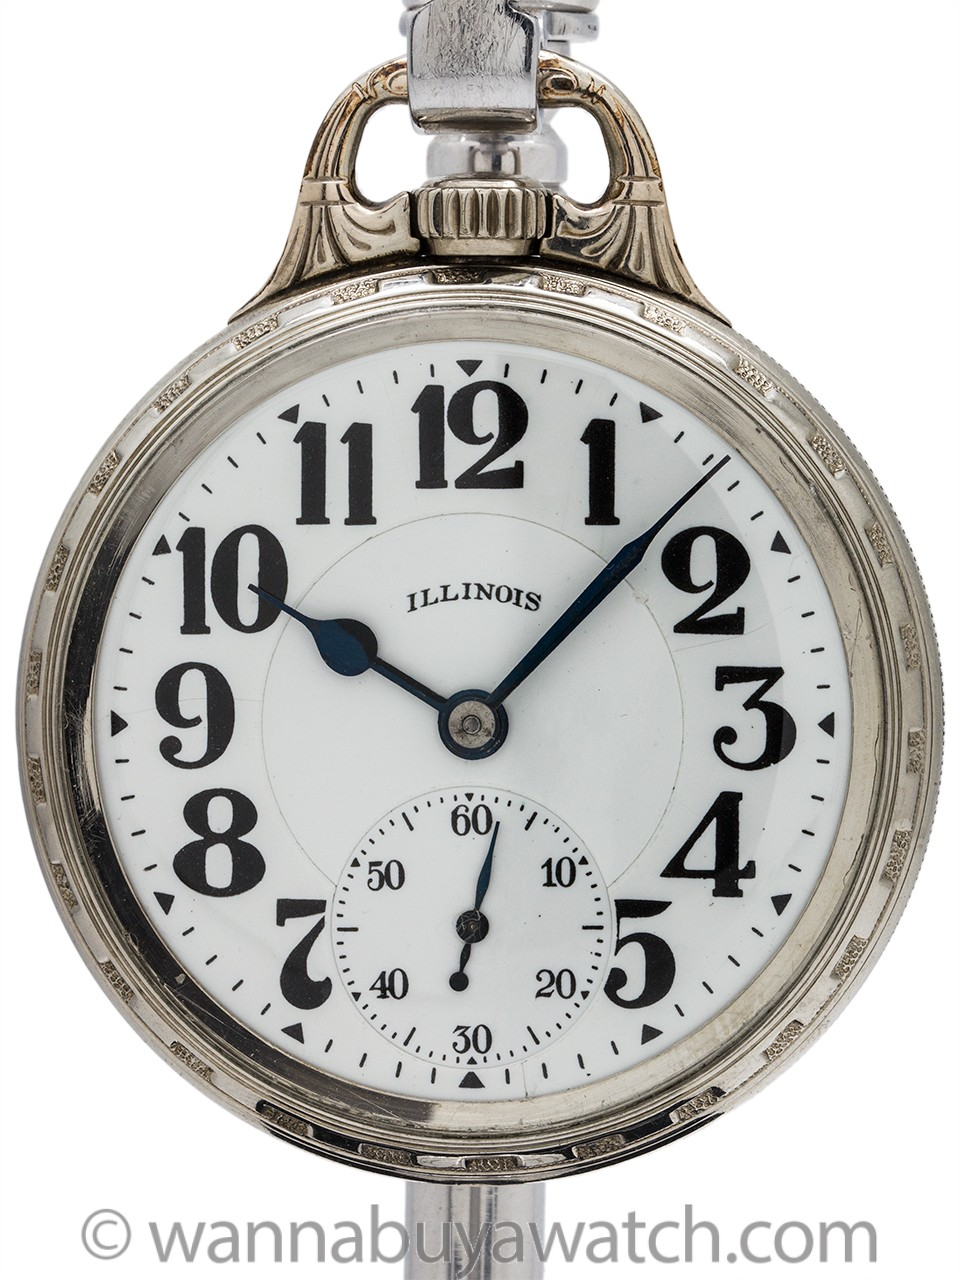 Illinois Bunn Special 21 Jewel 60 Hour Railroad Watch circa 1920's